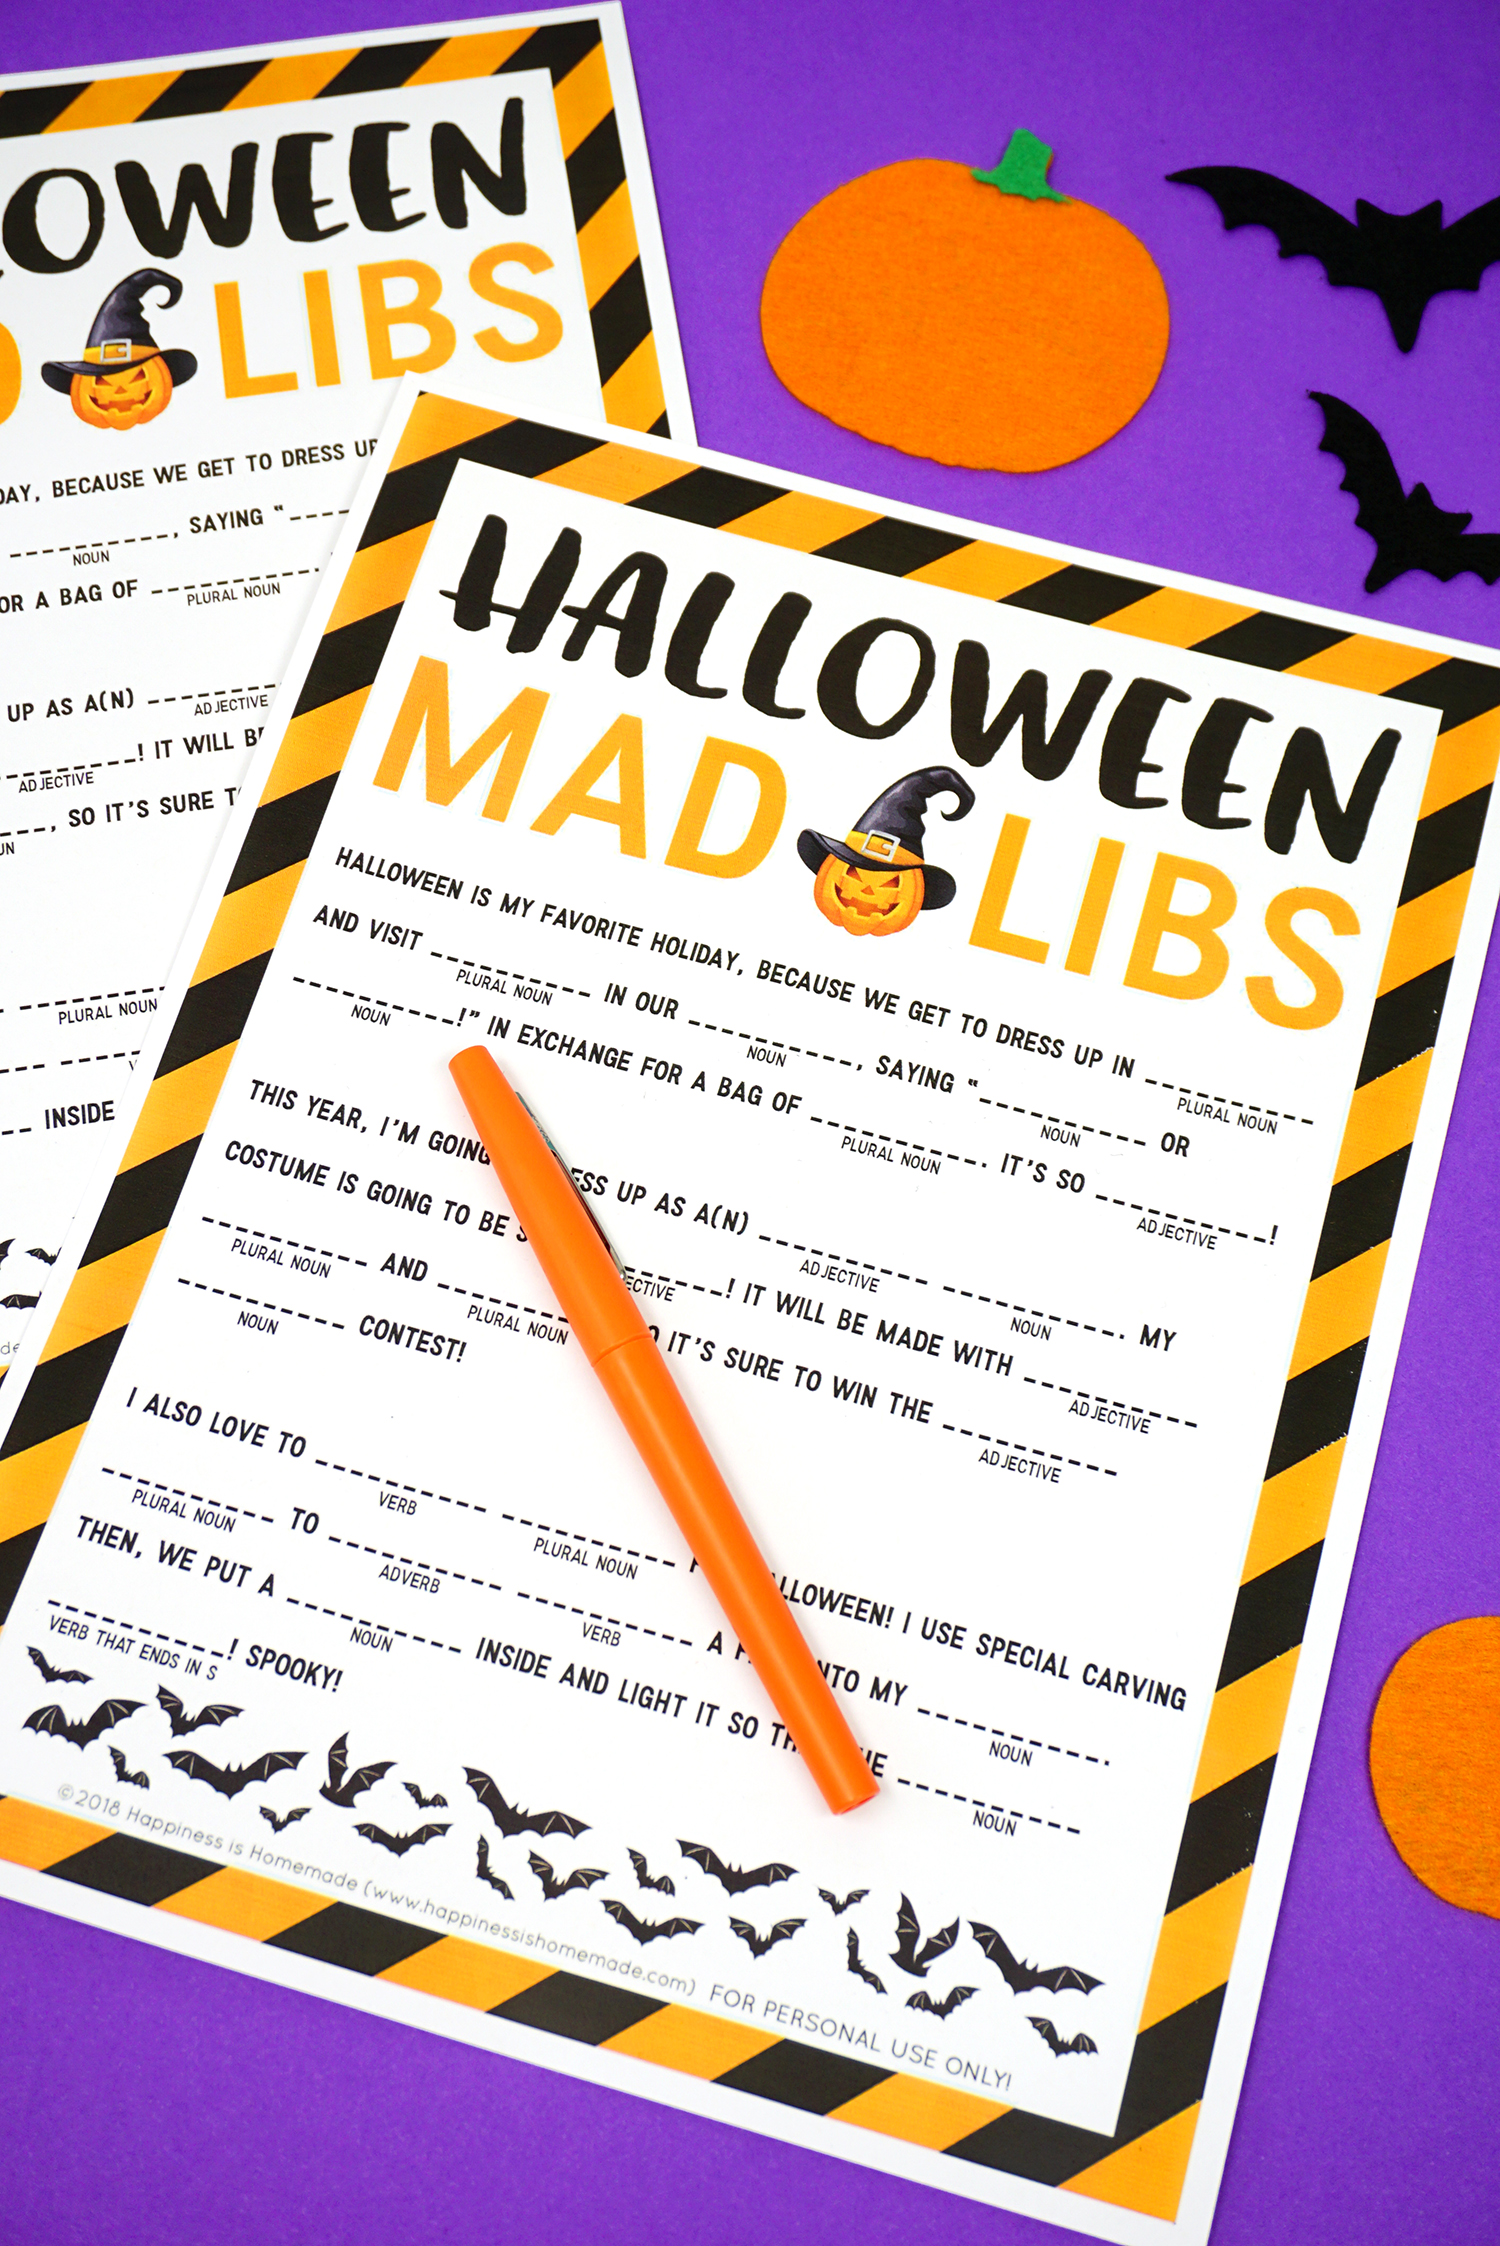 photo about Halloween Mad Libs Printable Free named Halloween Nuts Libs Printable - Pleasure is Home made